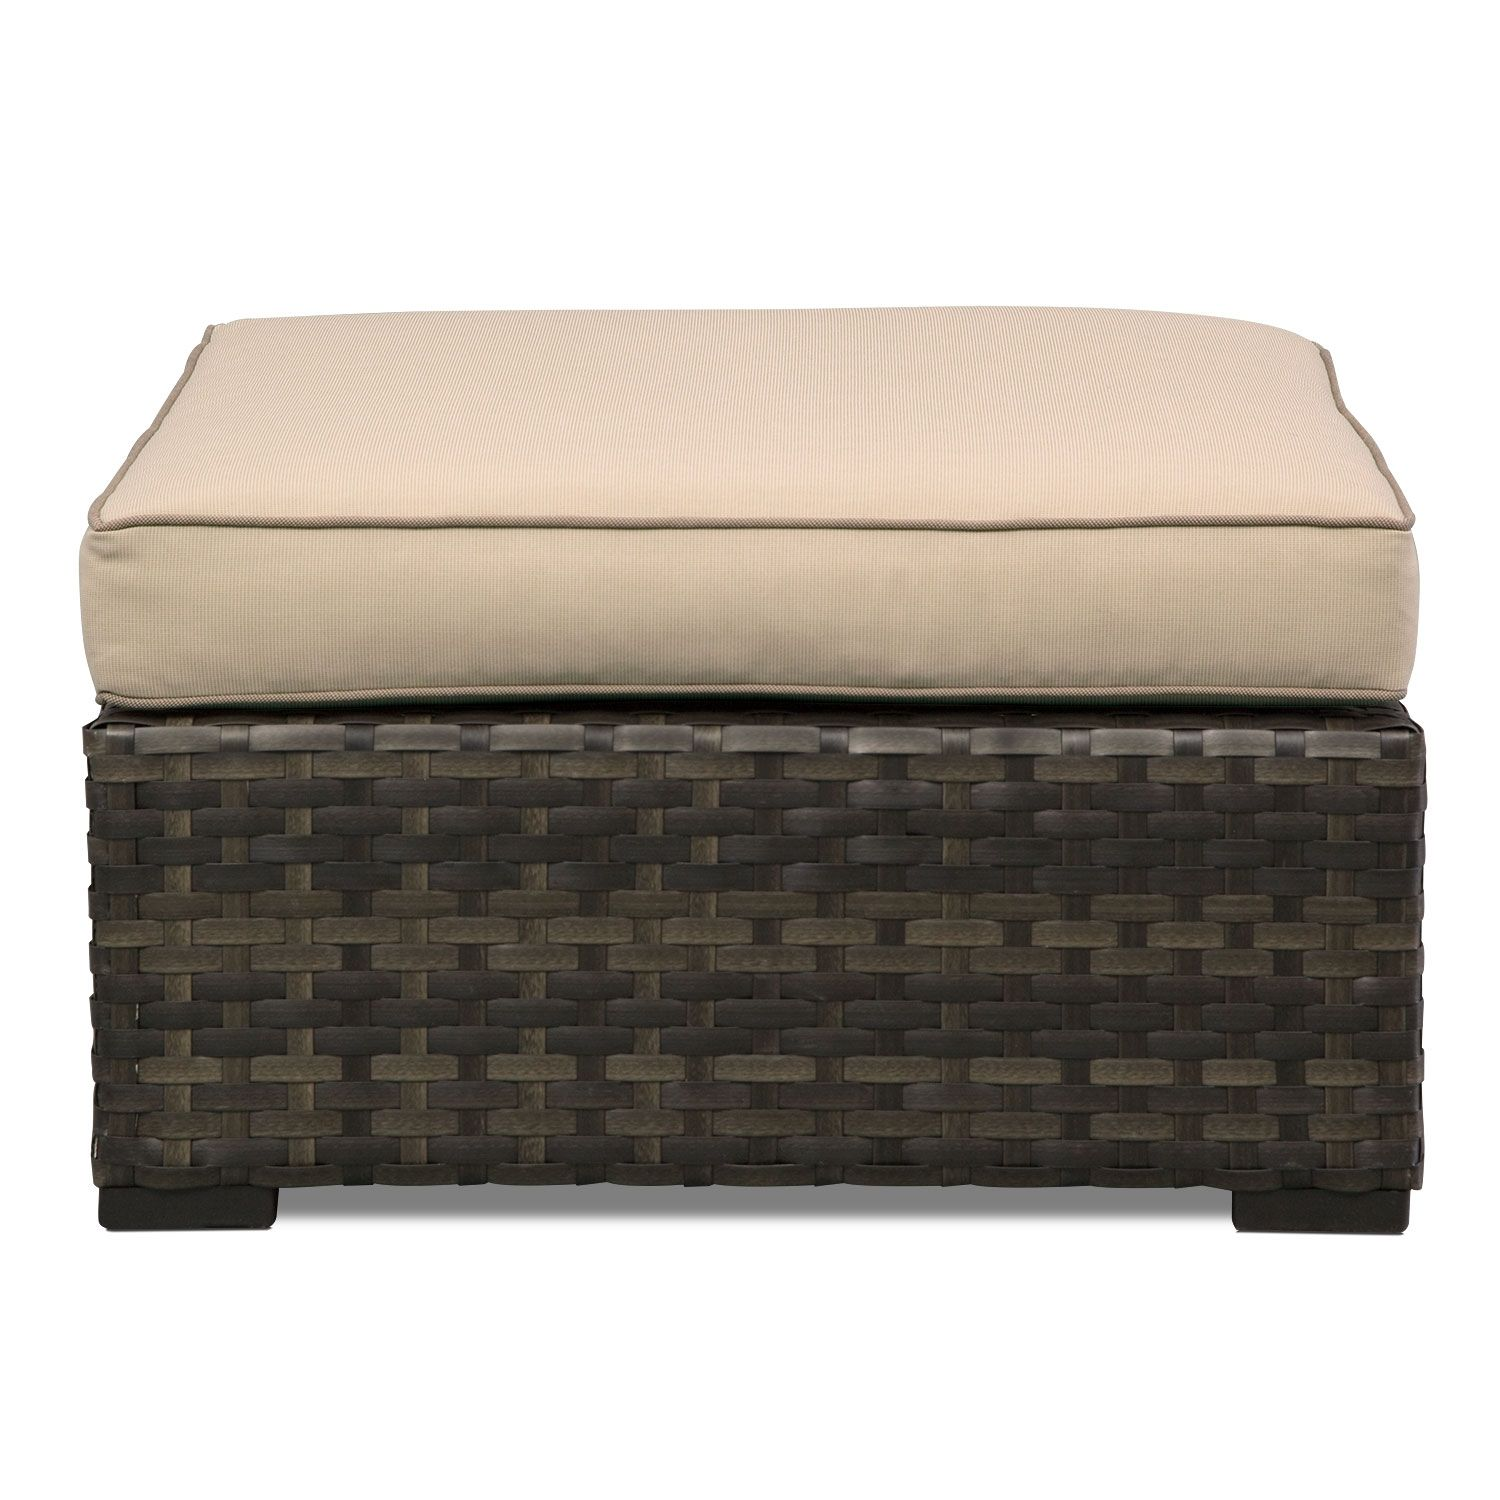 Regatta Outdoor Ottoman | Value City Furniture #VCFcontest - Regatta Outdoor Ottoman Value City Furniture #VCFcontest